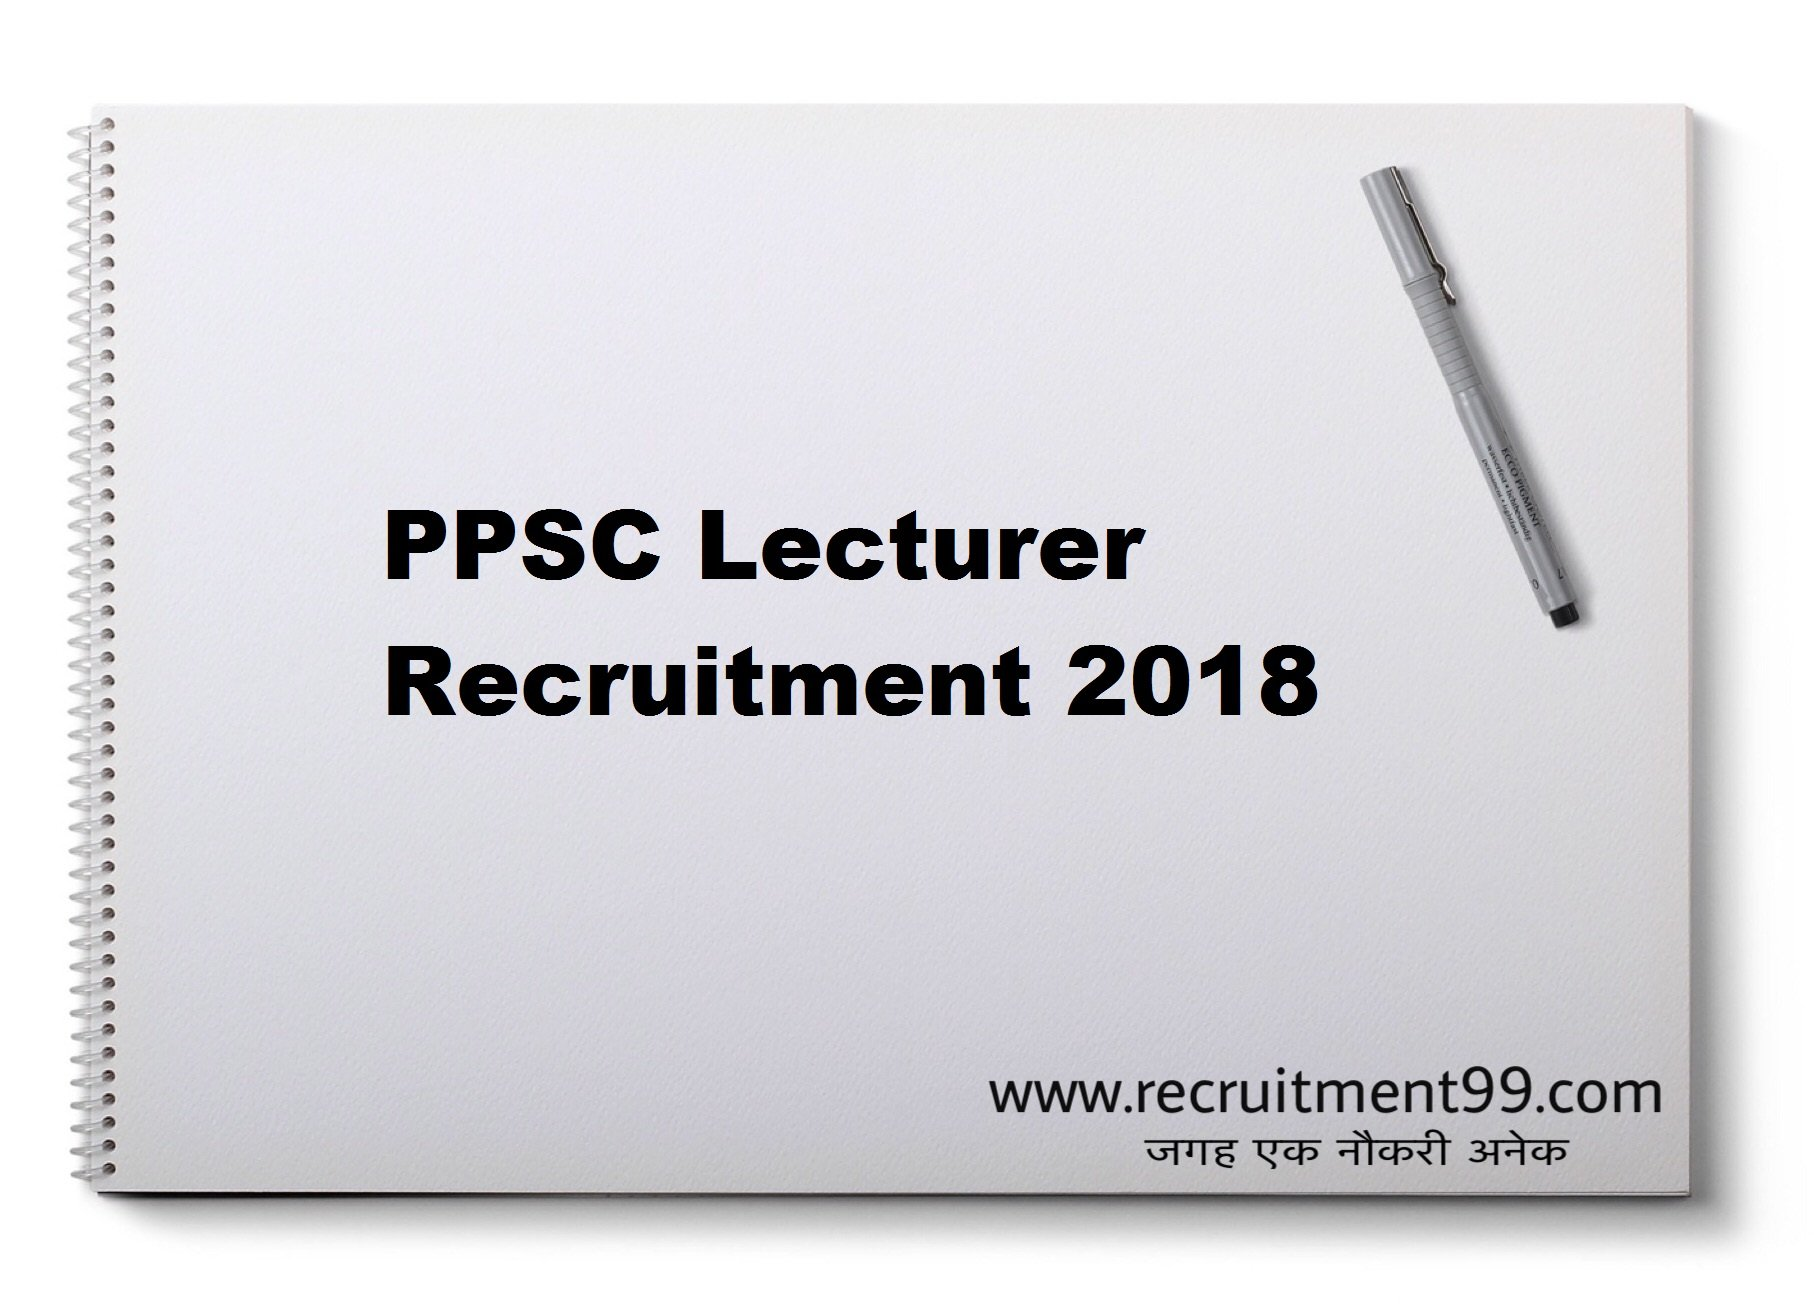 PPSC Lecturer Recruitment Admit Card Result 2018